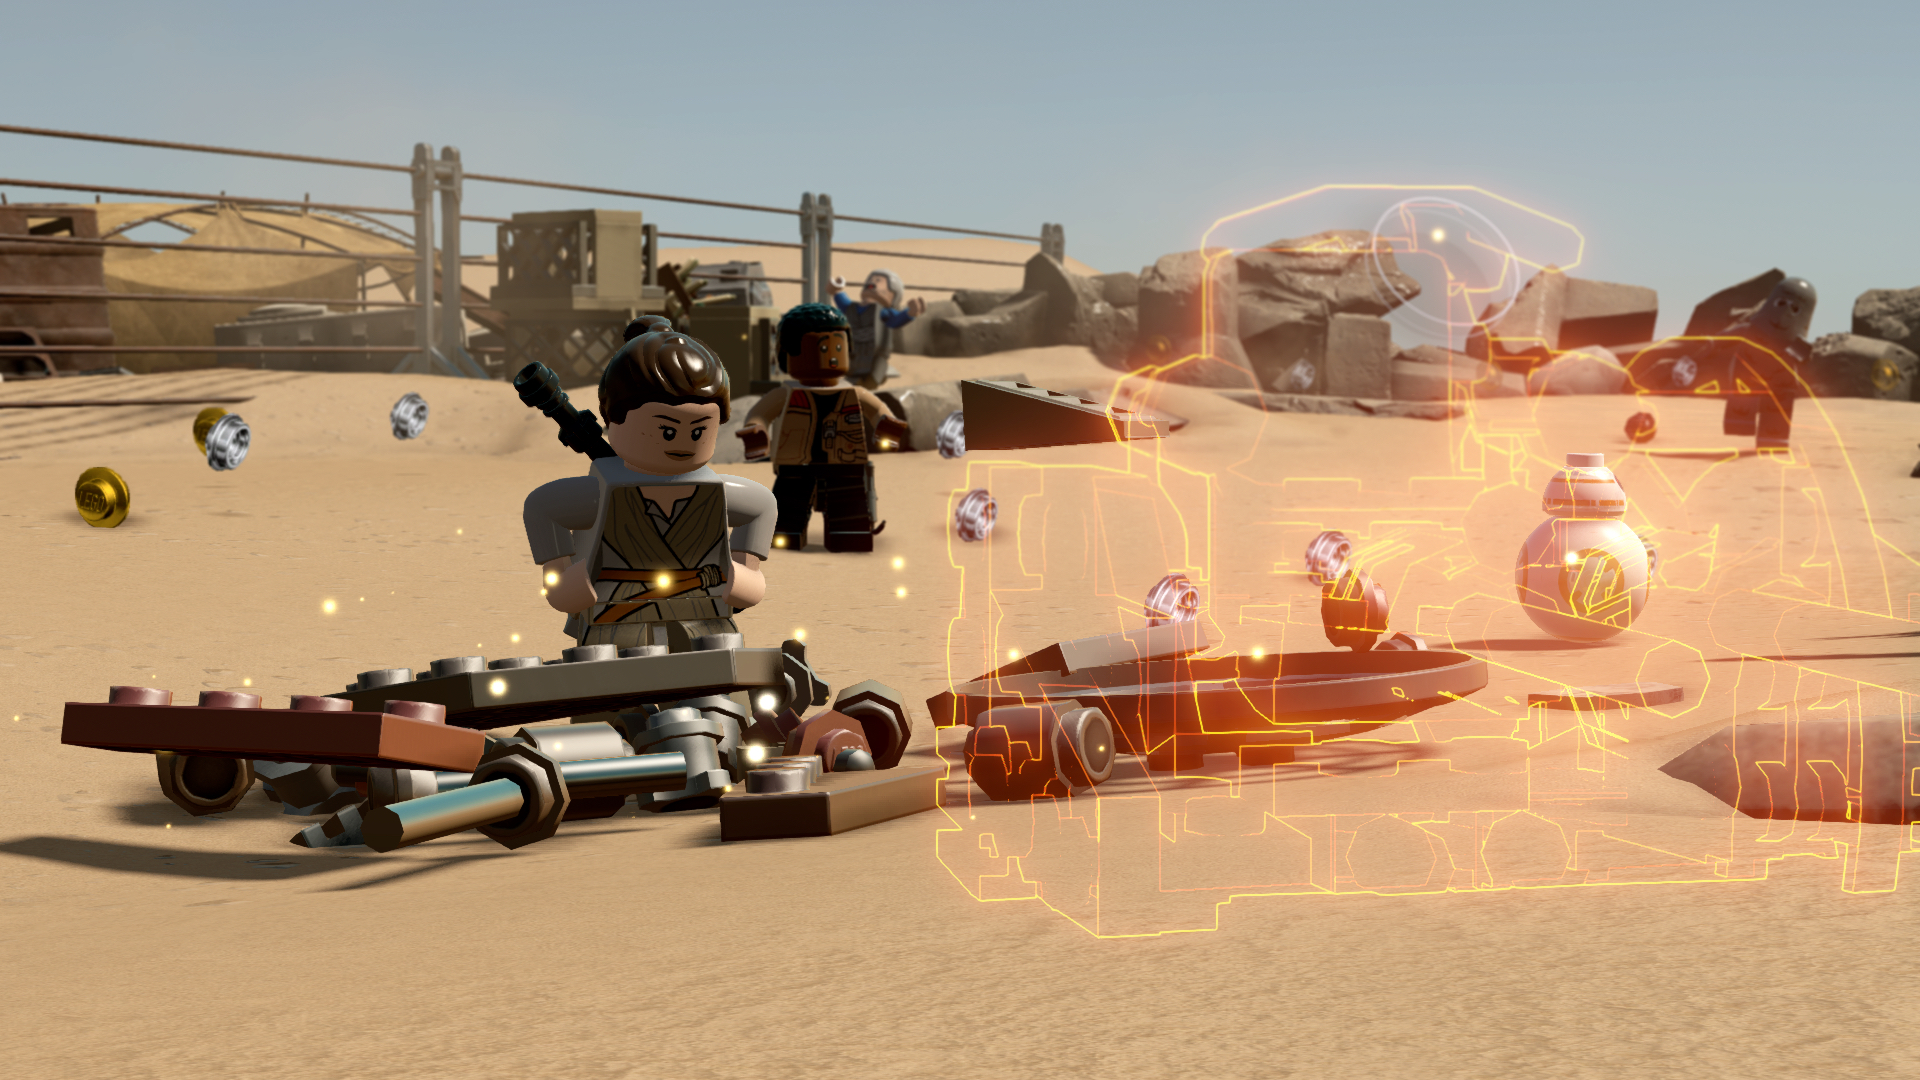 LEGO Star Wars: The Force Awakens - Sith'ting its way to success